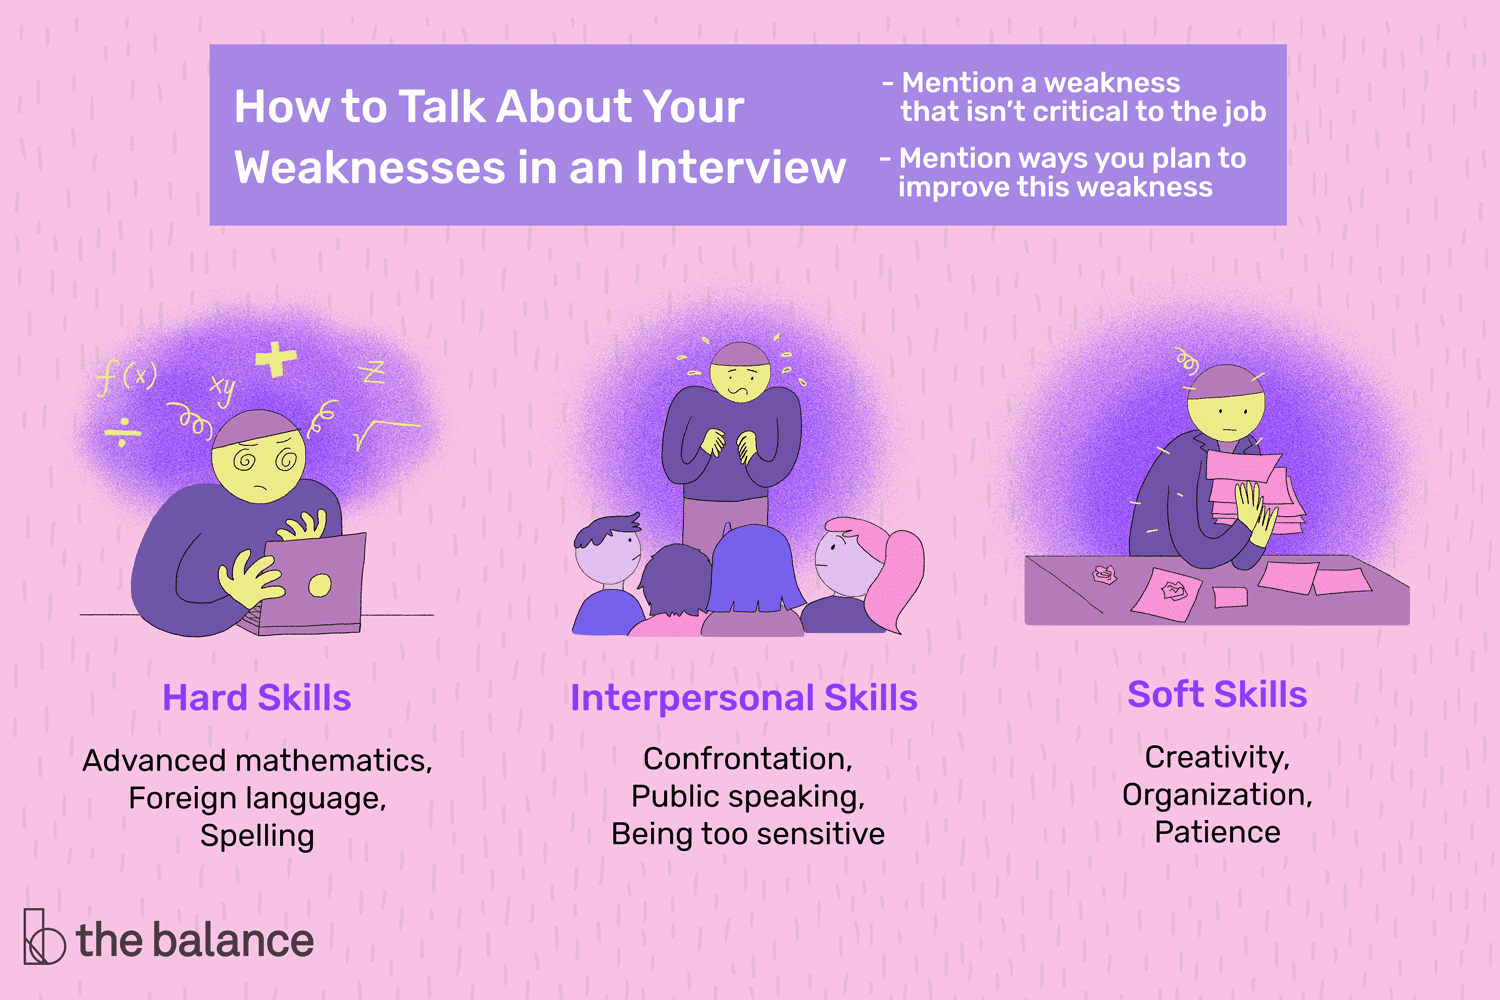 strengths and weaknesses in an interview